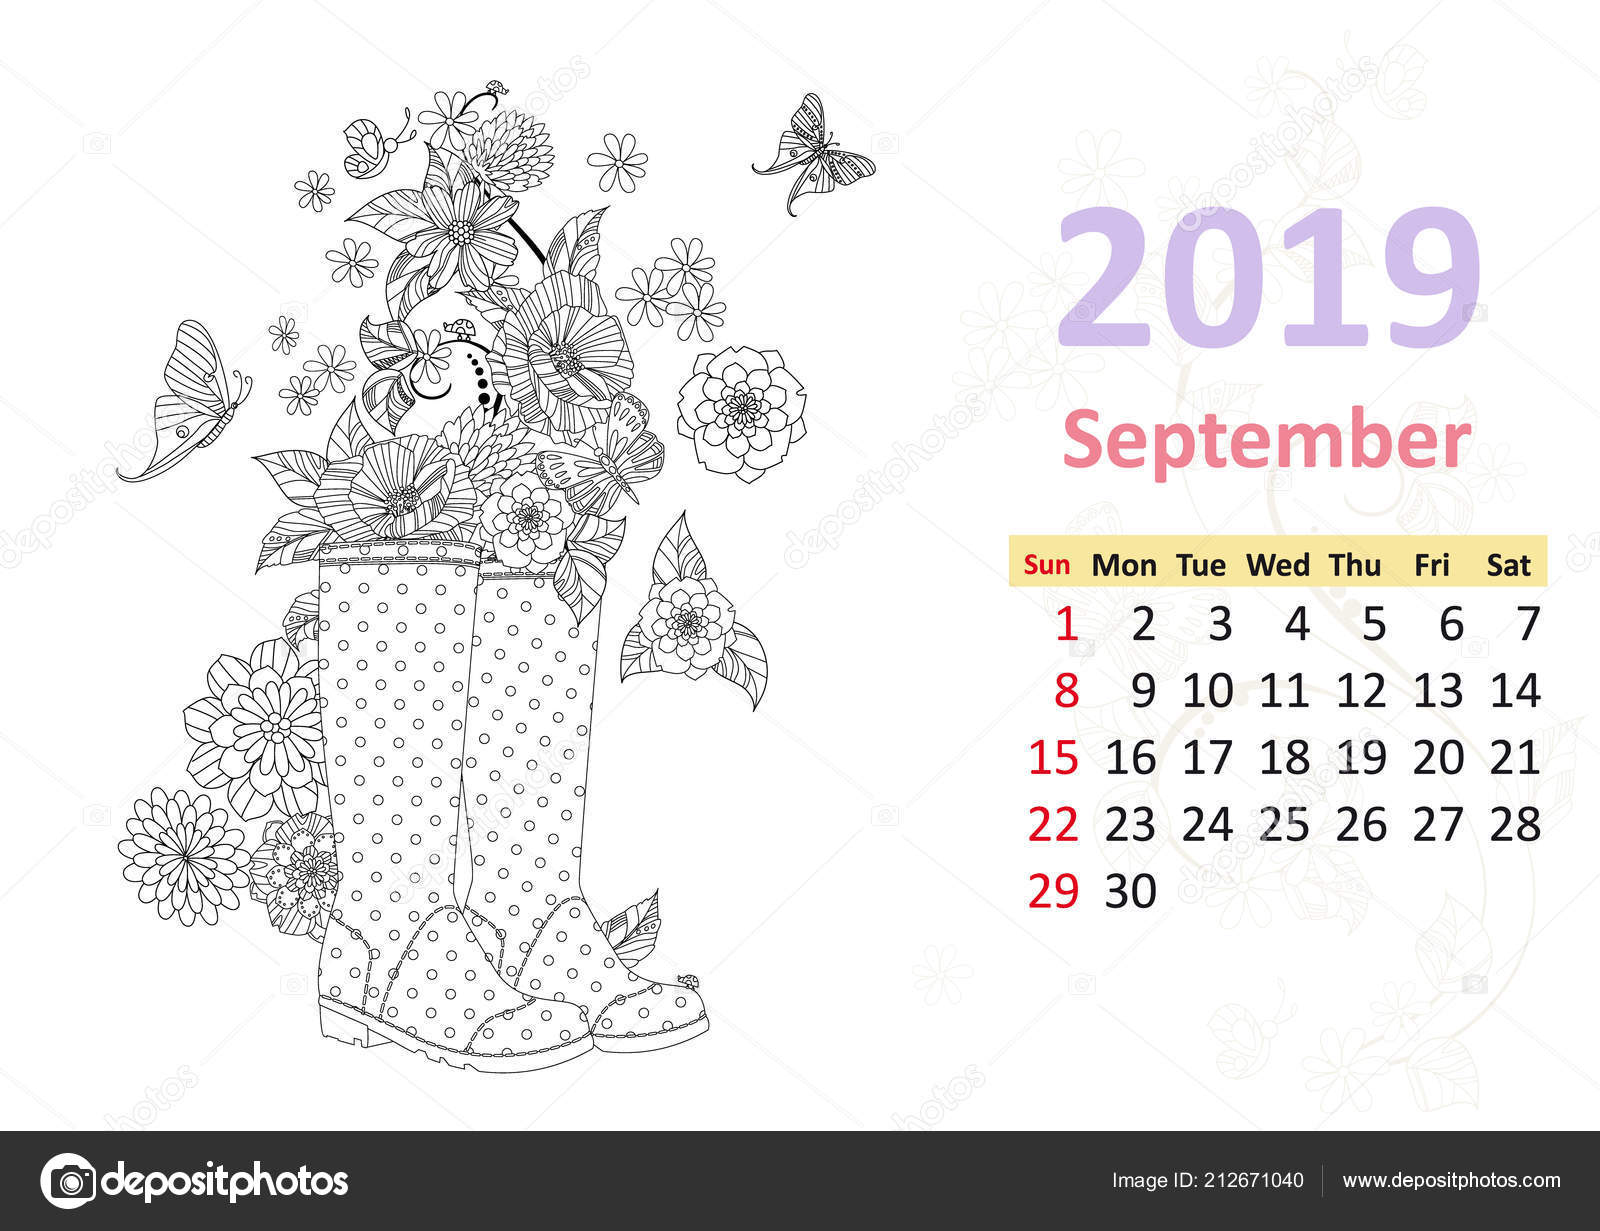 Coloring Calendar Page September 2019 Flowers Rain Boots Stock